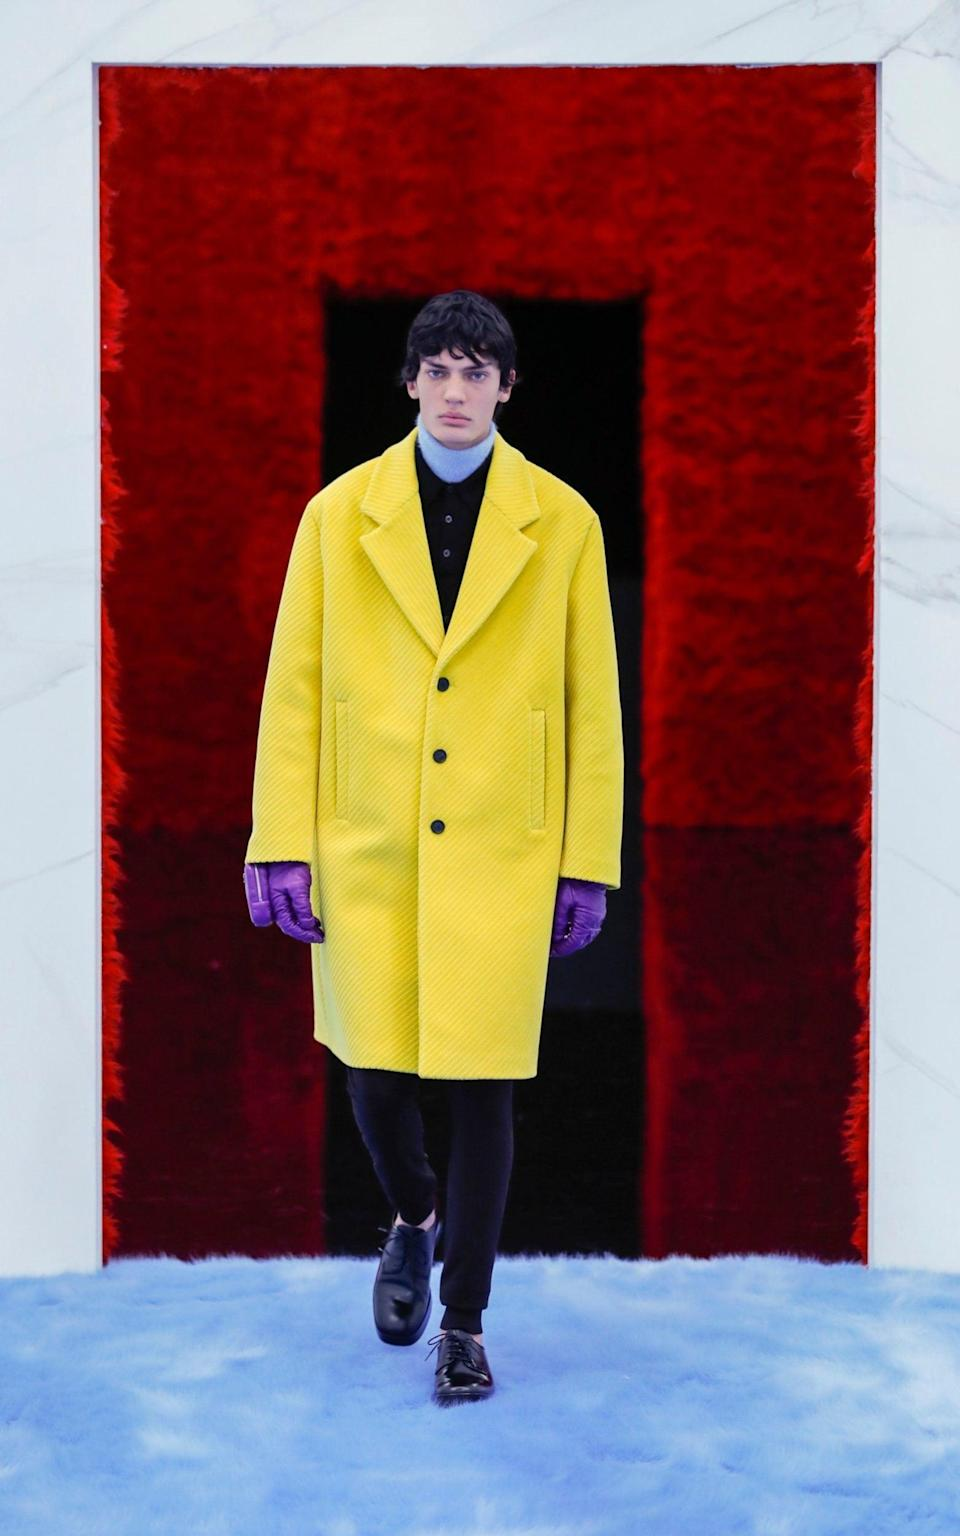 Dressing gown for daily life Fendi